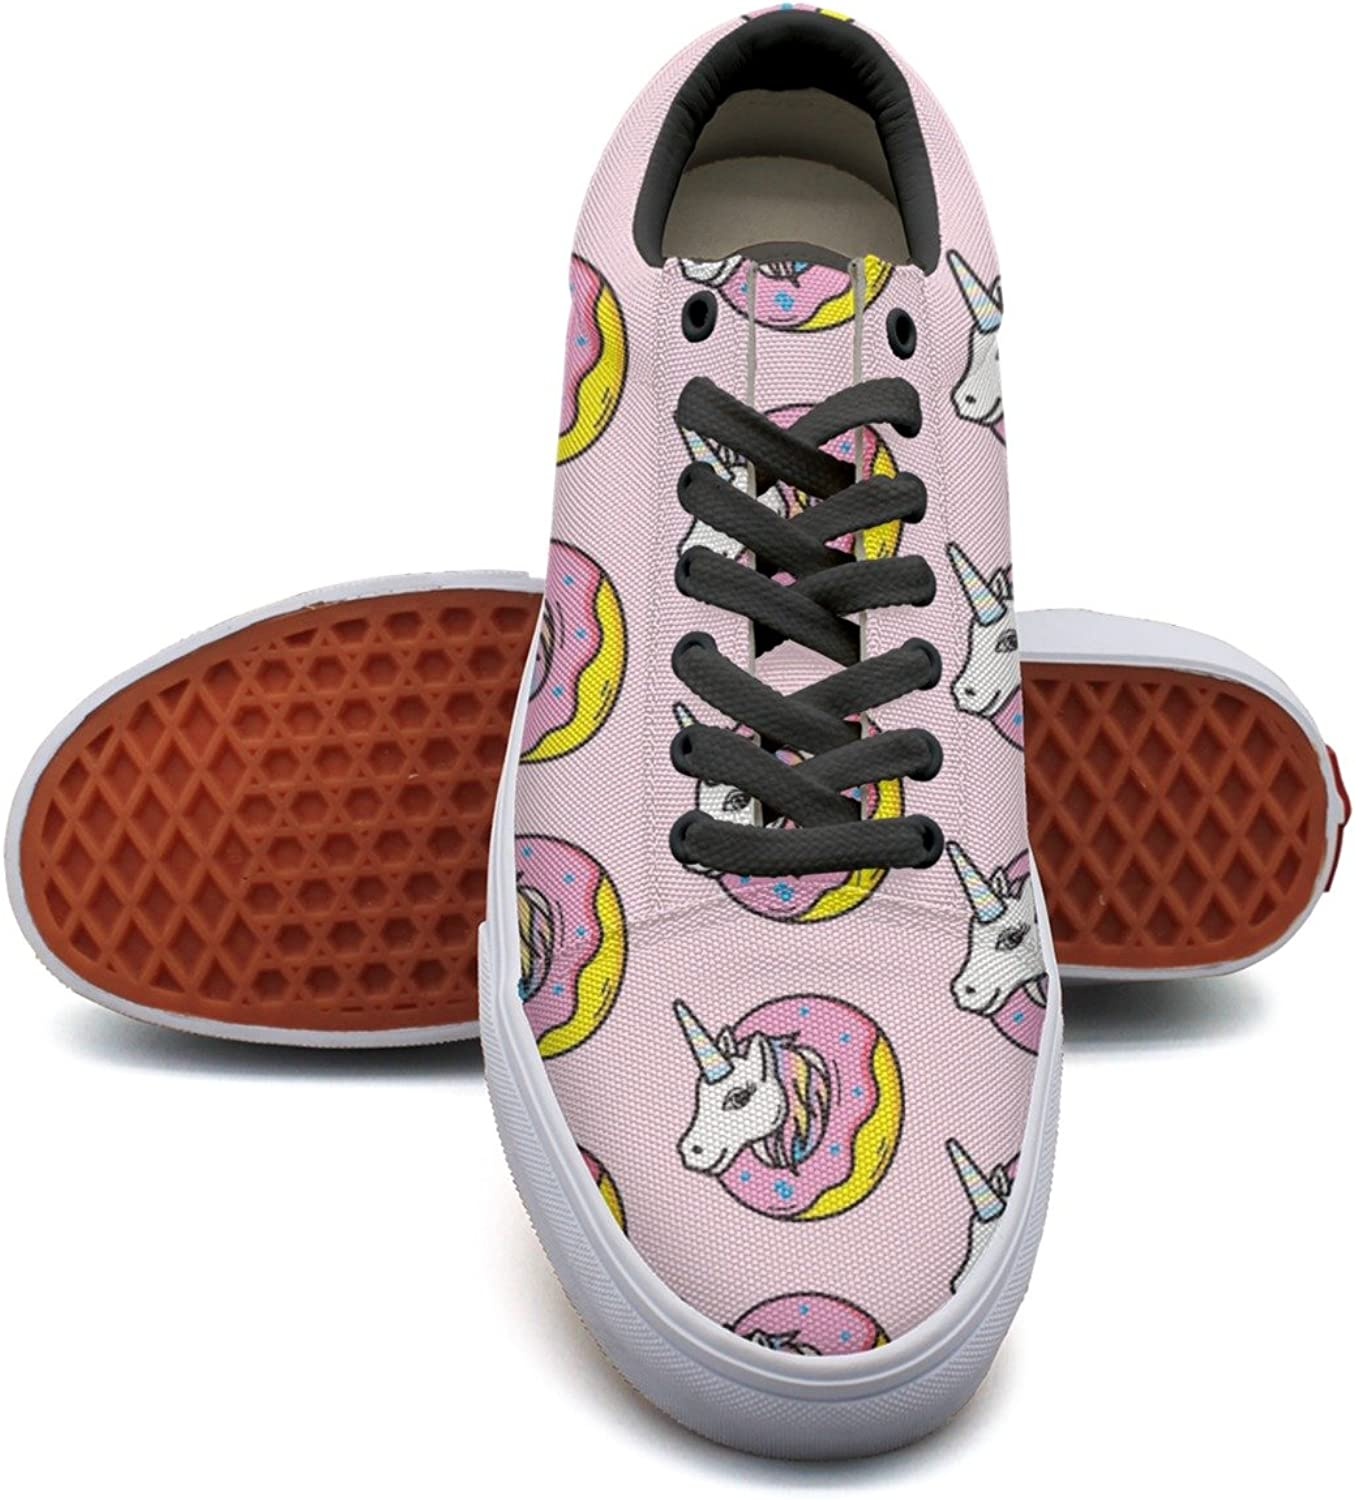 Pink Unicorns In Donuts Women's Casual Sneakers shoes Canvas Sports Cute Original